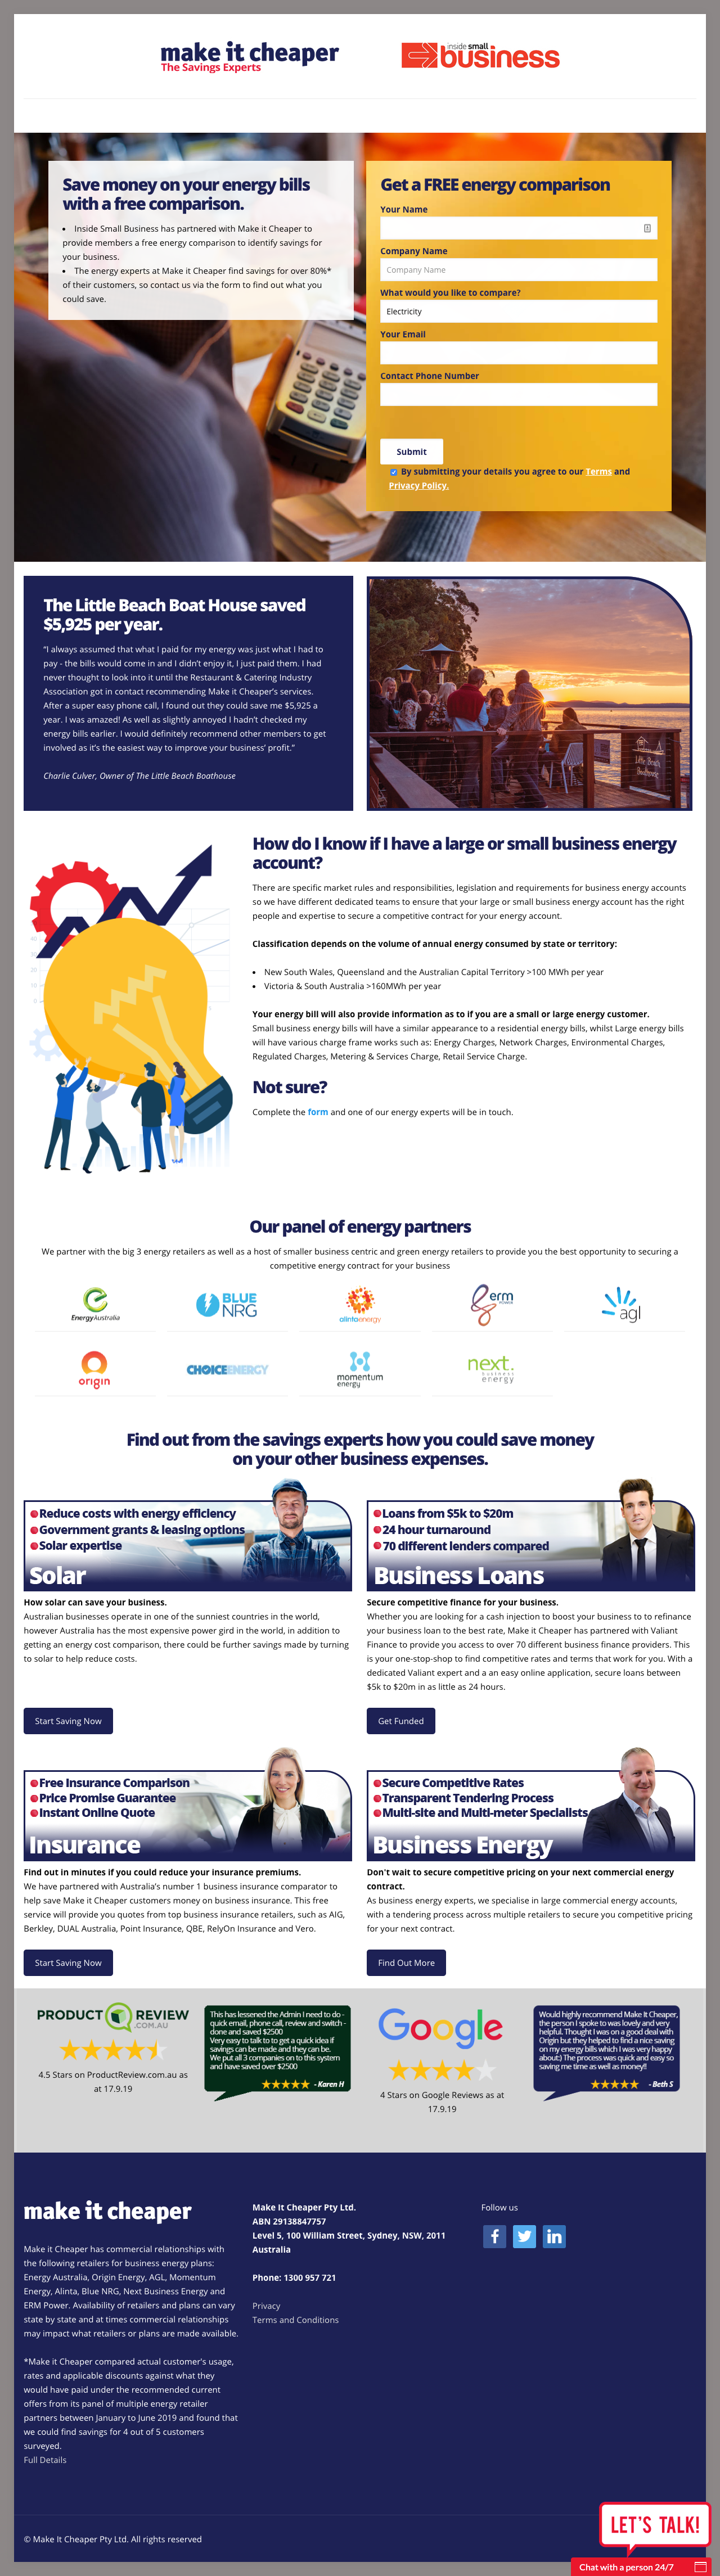 screencapture-micenergybrokers-au-inside-small-business-2019-10-01-21_45_21